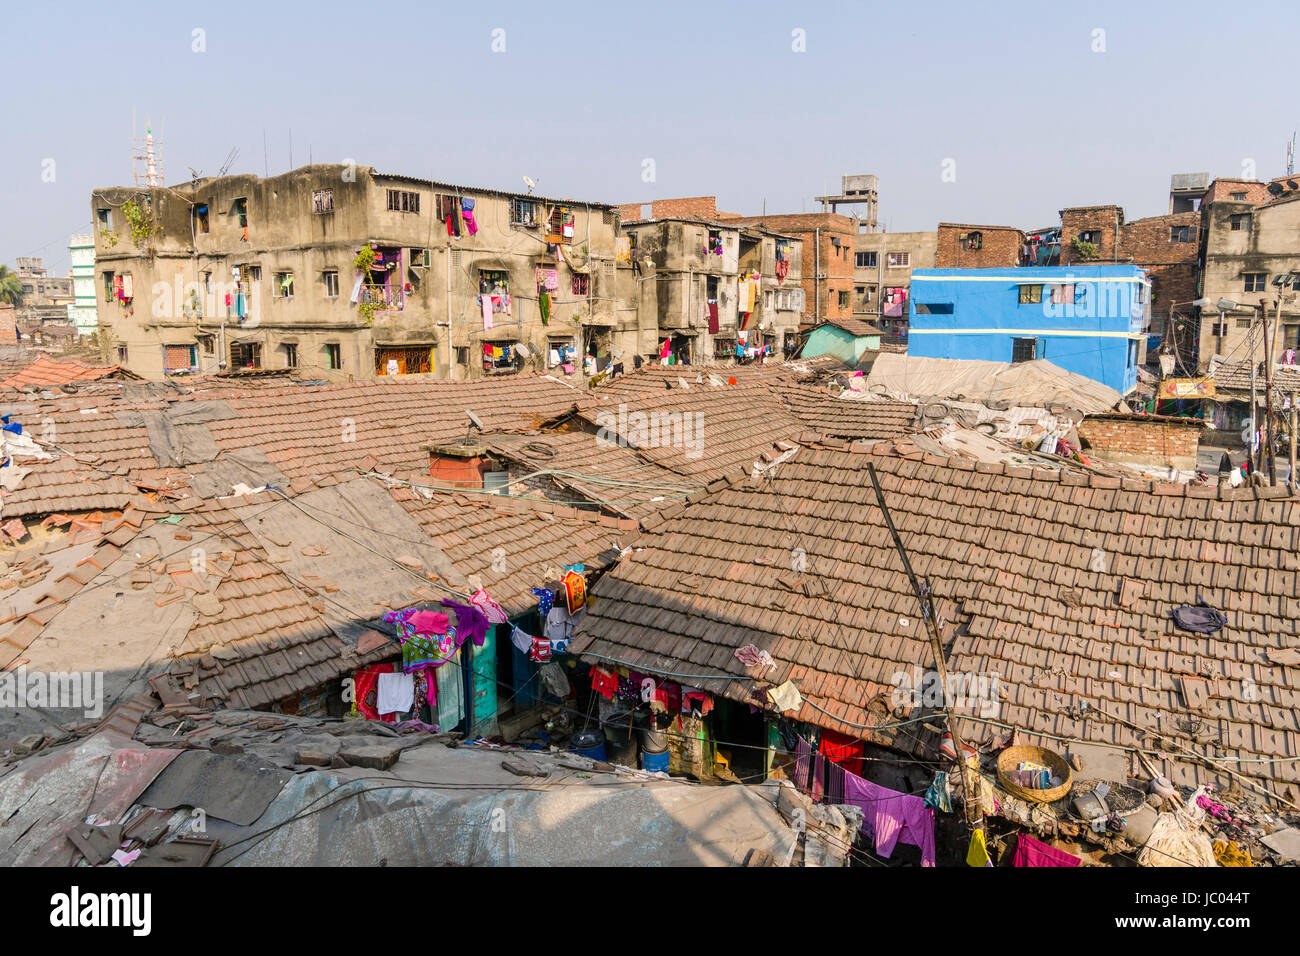 Aerial view across slum dwelling roofs in the suburb Park Circus - Stock Image